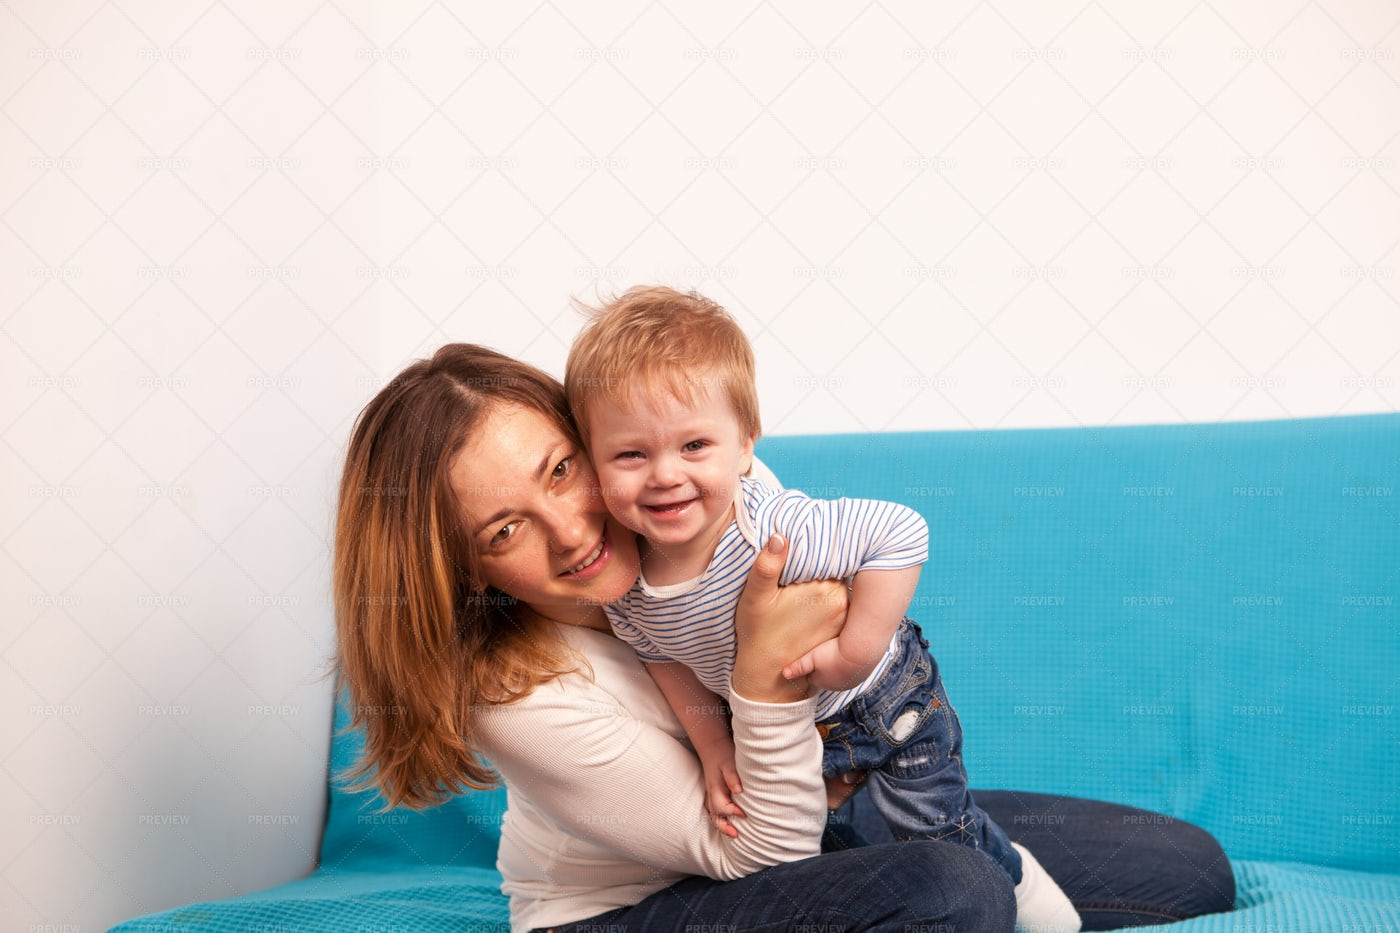 Mother And Laughing Son Playing: Stock Photos